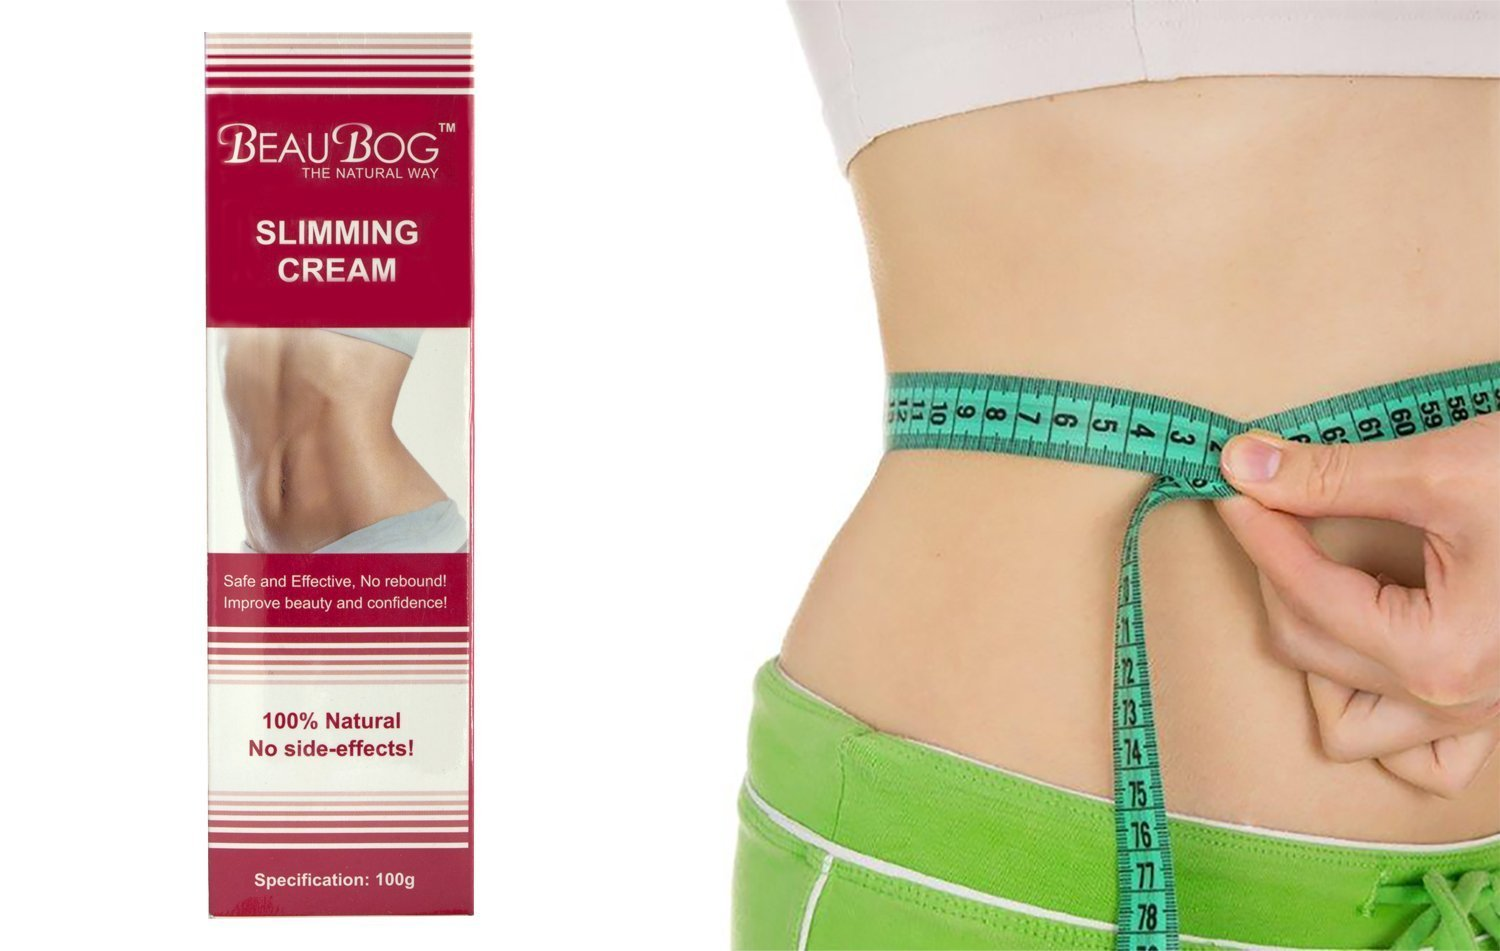 BeauBog (TM) Most advanced 100% Natural and effective slimming cream of the brands of natural beauty